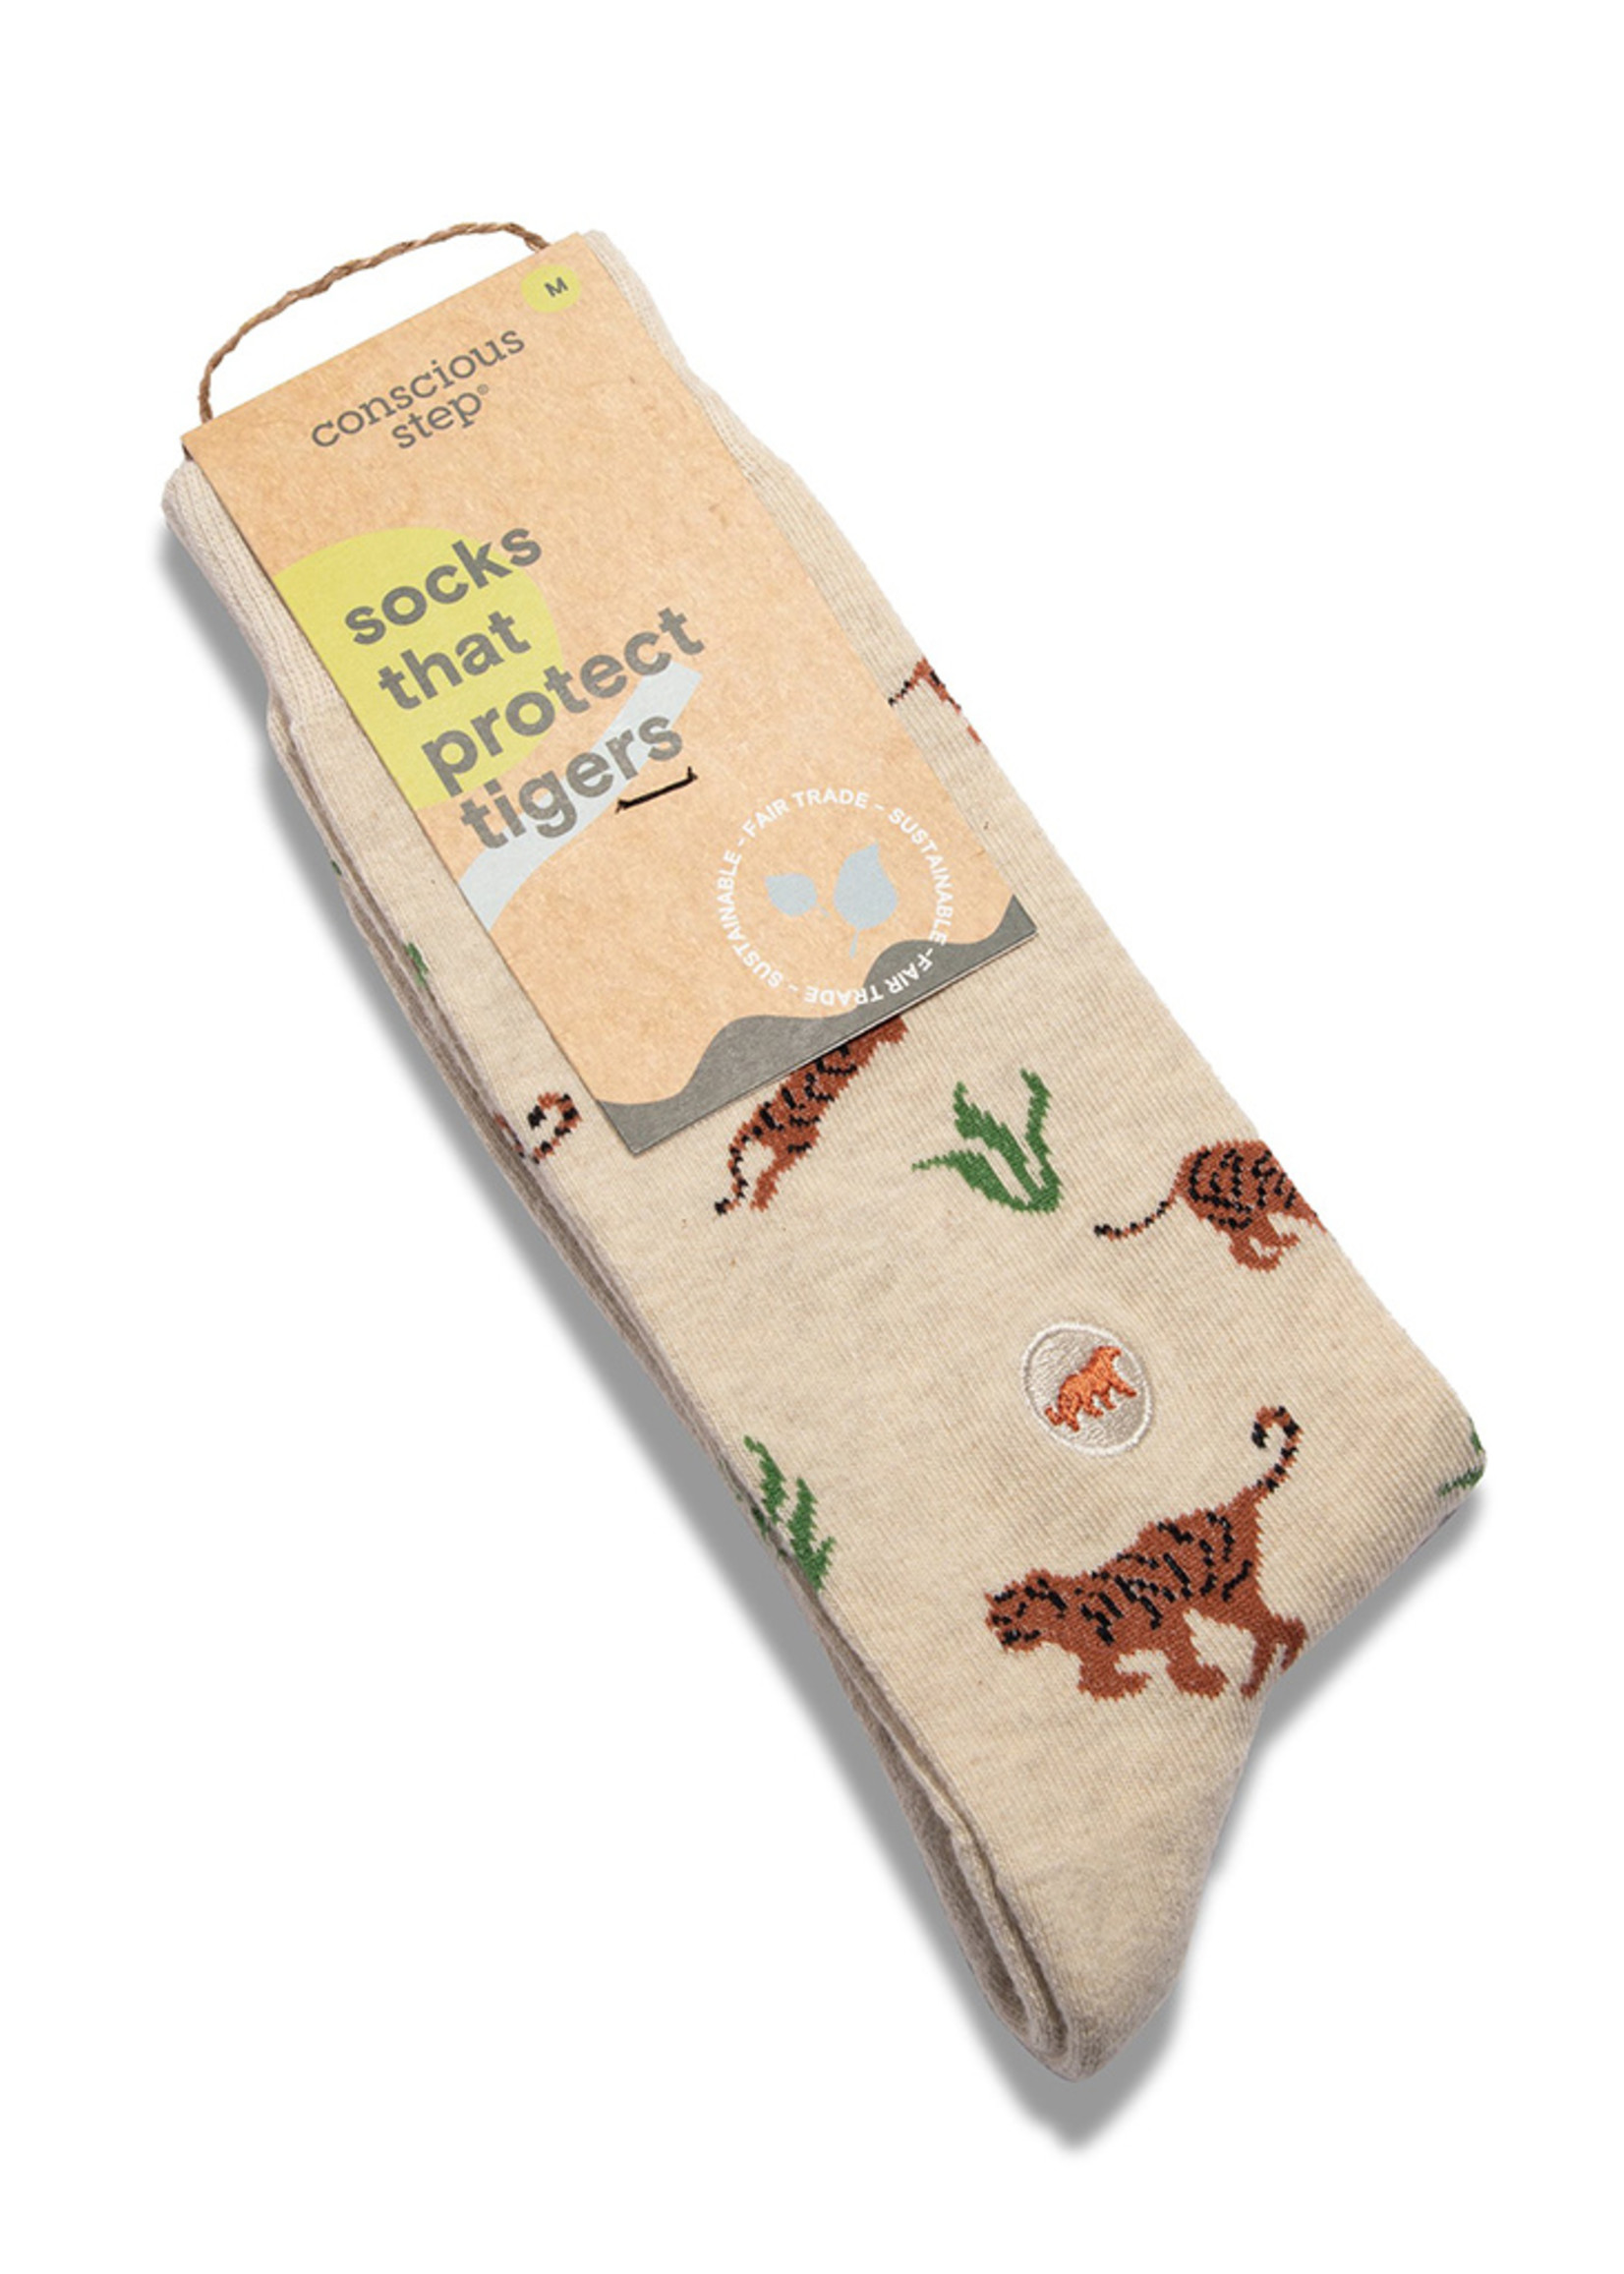 Conscious Step Men's Socks that Protect Tigers